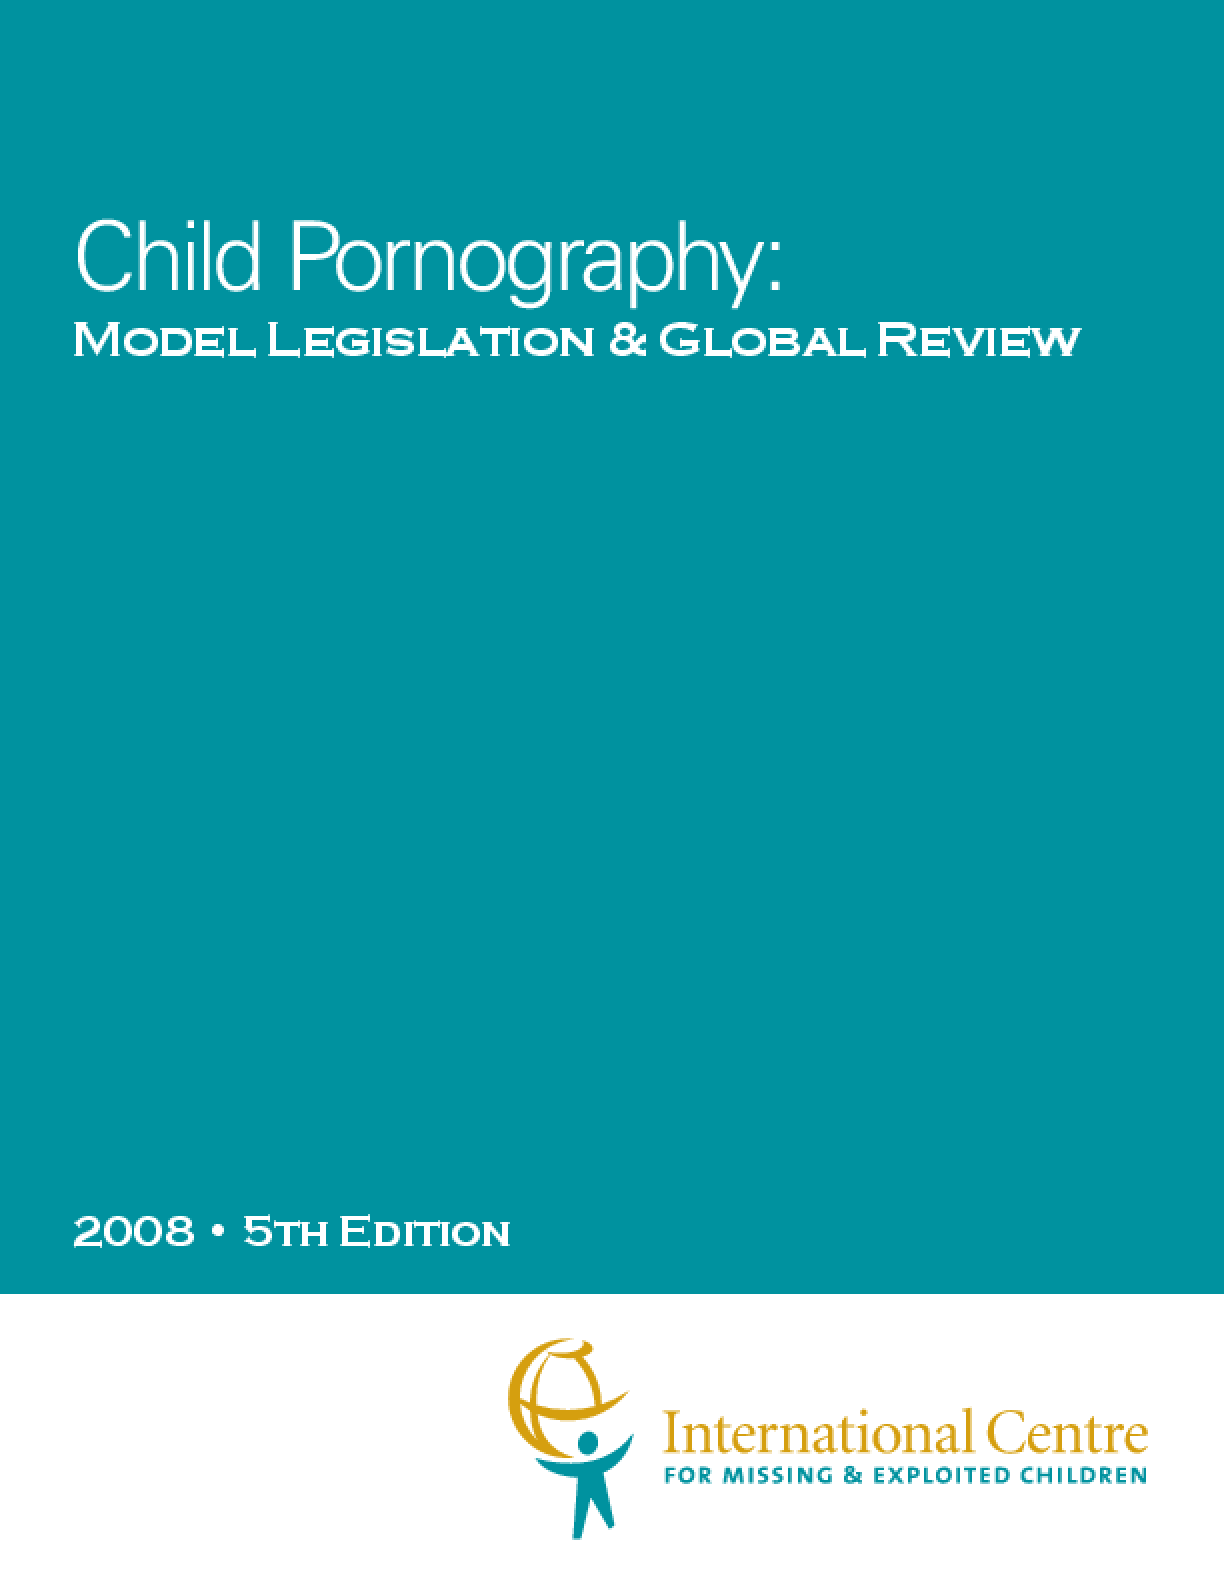 Child Pornography: Model Legislation & Global Review